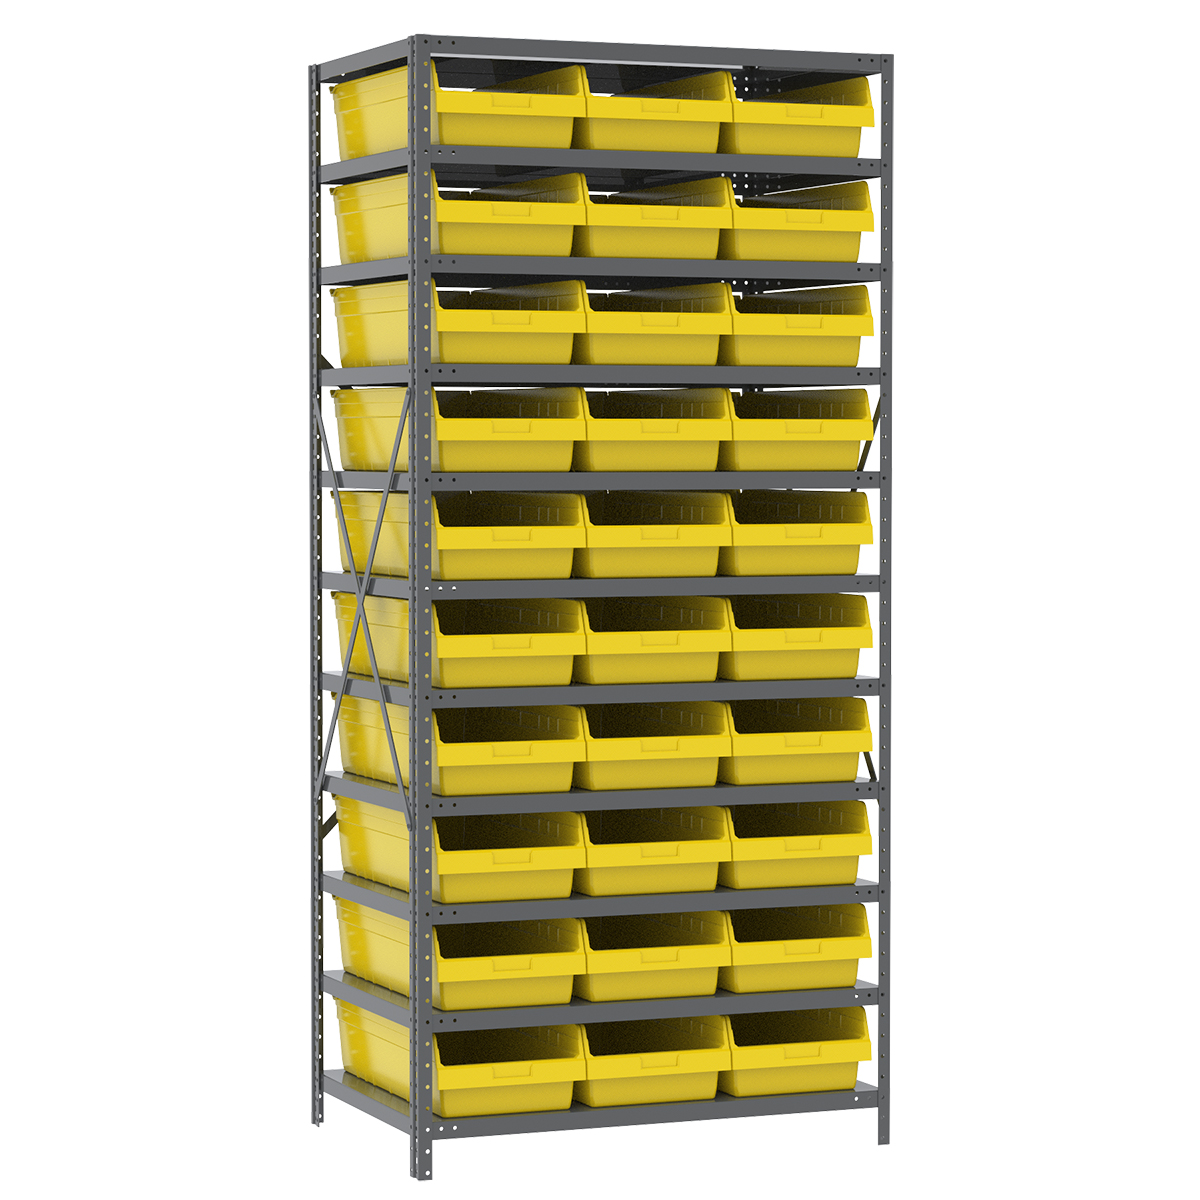 Steel Shelving Kit, 24x36x79, 30 Bins, Gray/Yellow.  This item sold in carton quantities of 1.